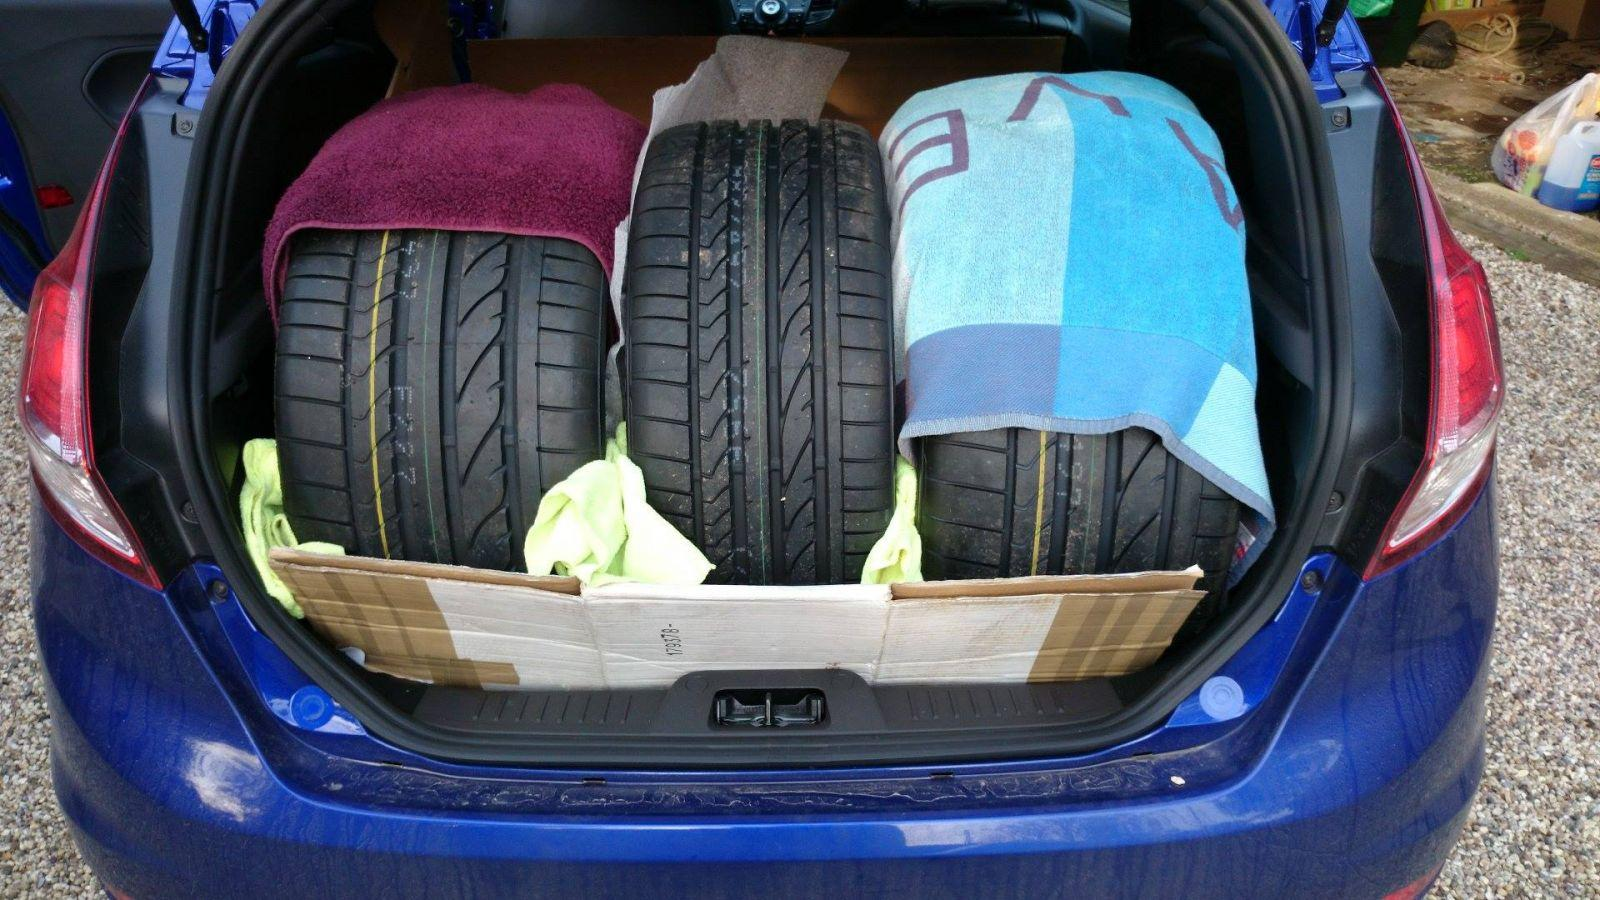 An Efficient use of a Fiesta's boot